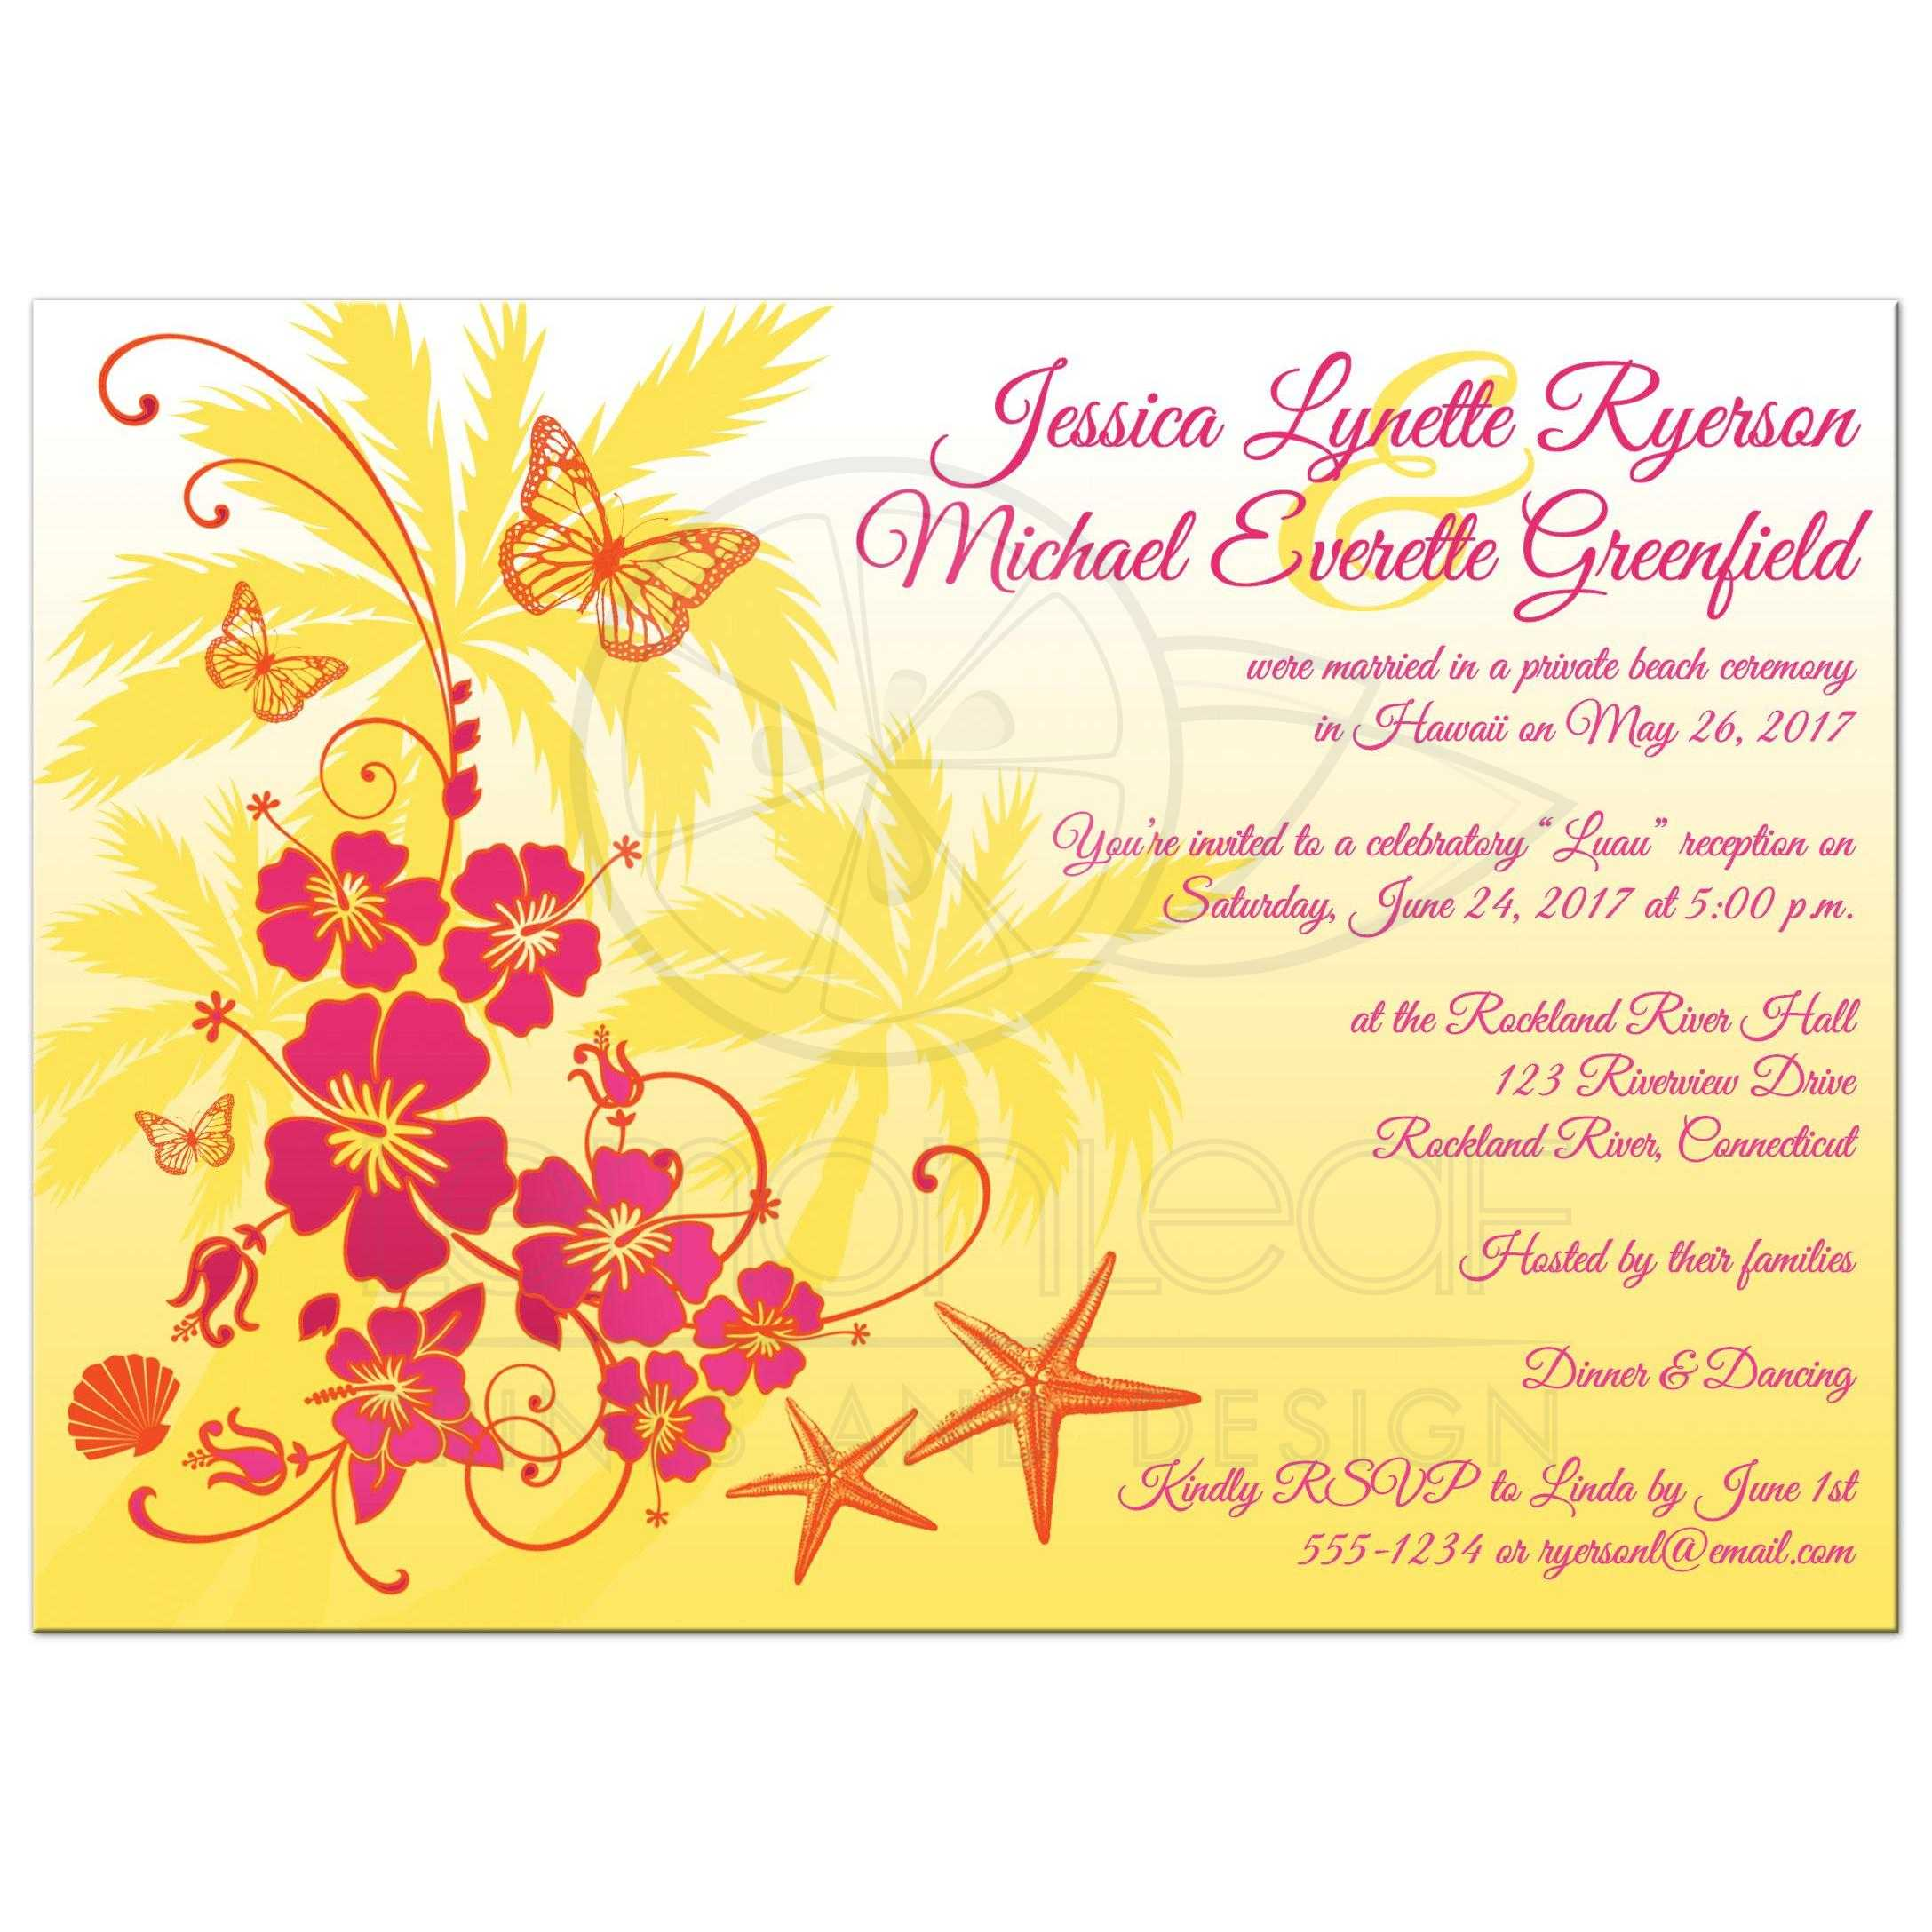 Post Wedding Reception Invitation | Yellow, Fuchsia, Orange, White ...